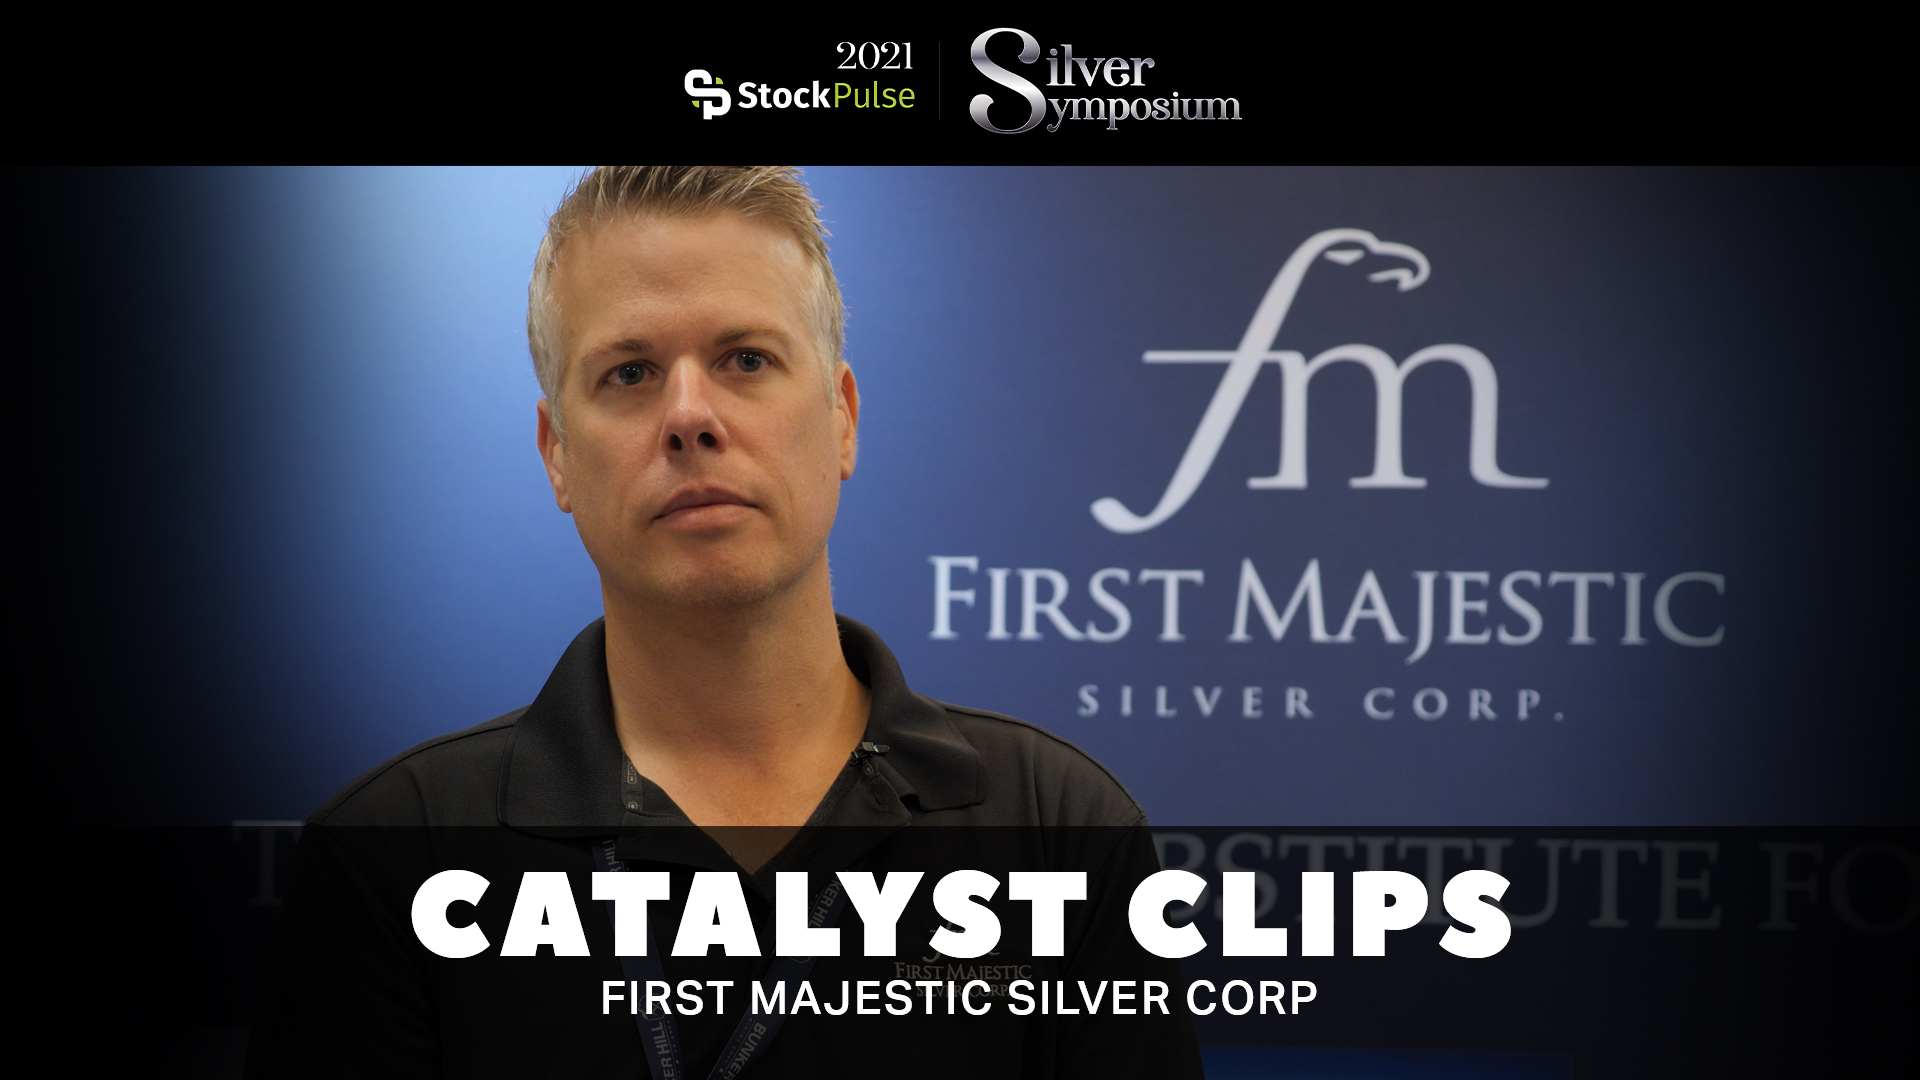 2021 StockPulse Silver Symposium Catalyst Clips | Todd Anthony of First Majestic Silver Corp